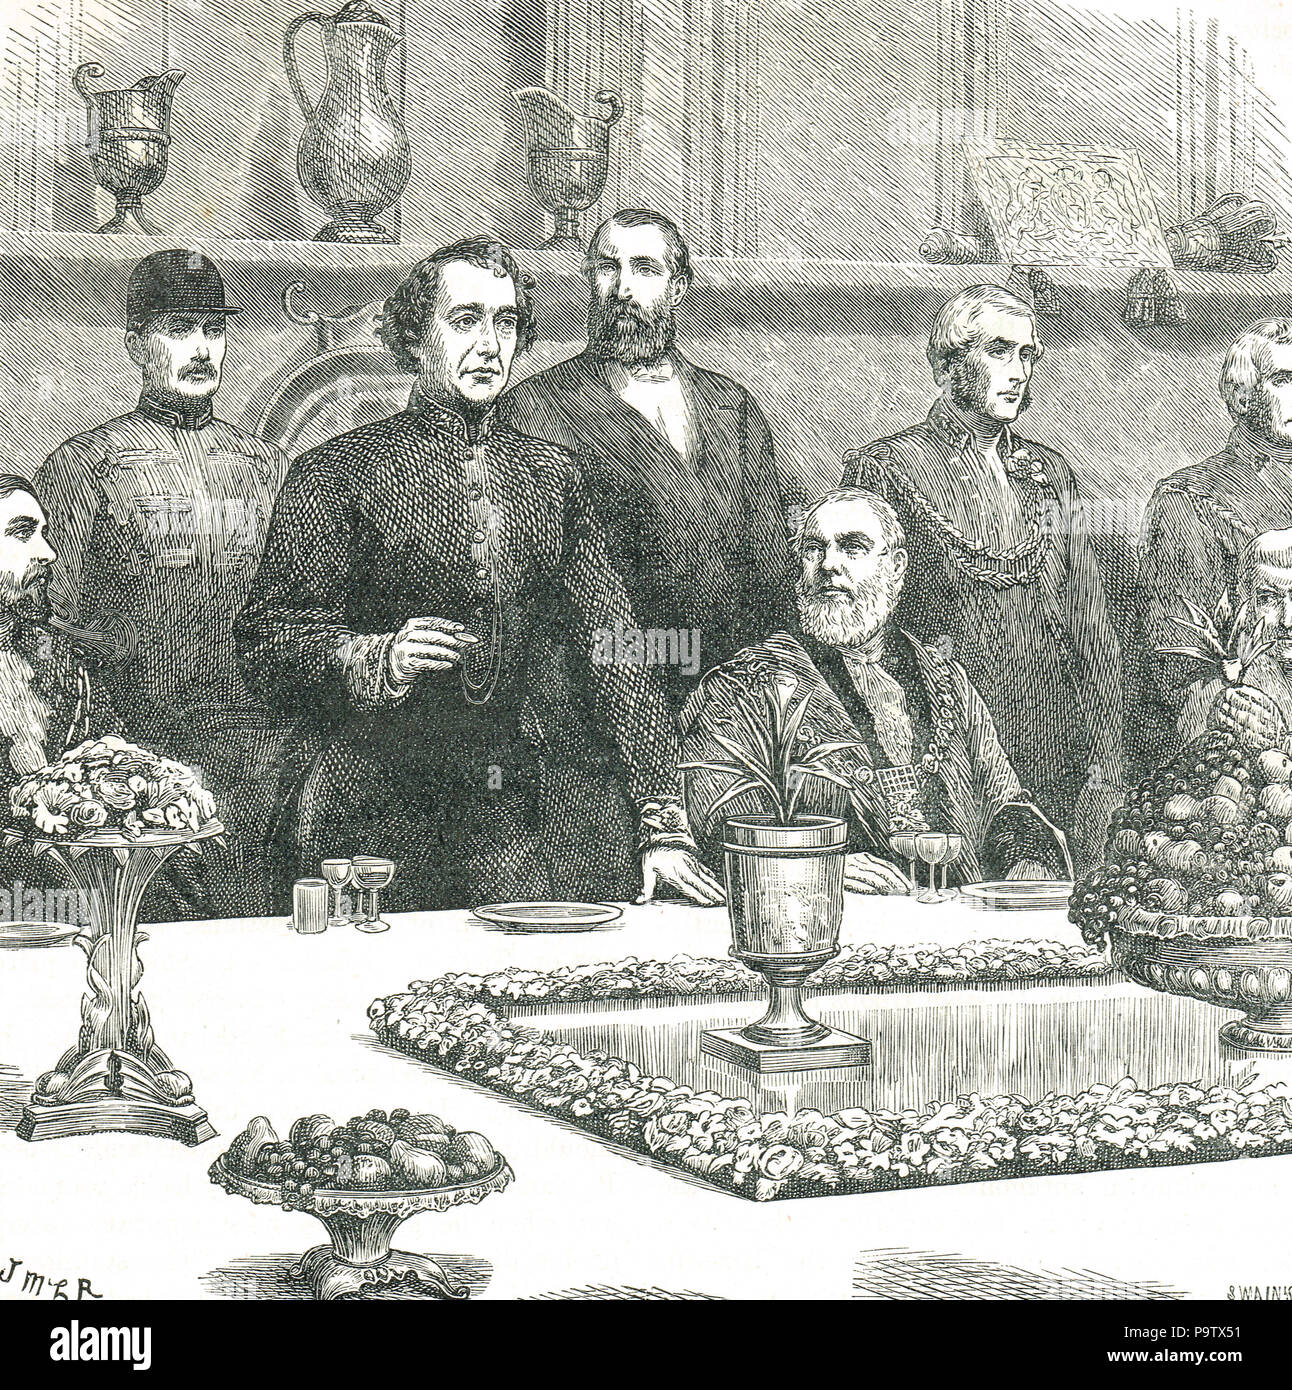 Lord Beaconsfield (Benjamin Disraeli) at the Lord Mayor's banquet in Guildhall, London, 9 November 1876. A speech on British interests, amid reports of atrocities in Bulgaria, and Ottoman Empire uprisings - Stock Image